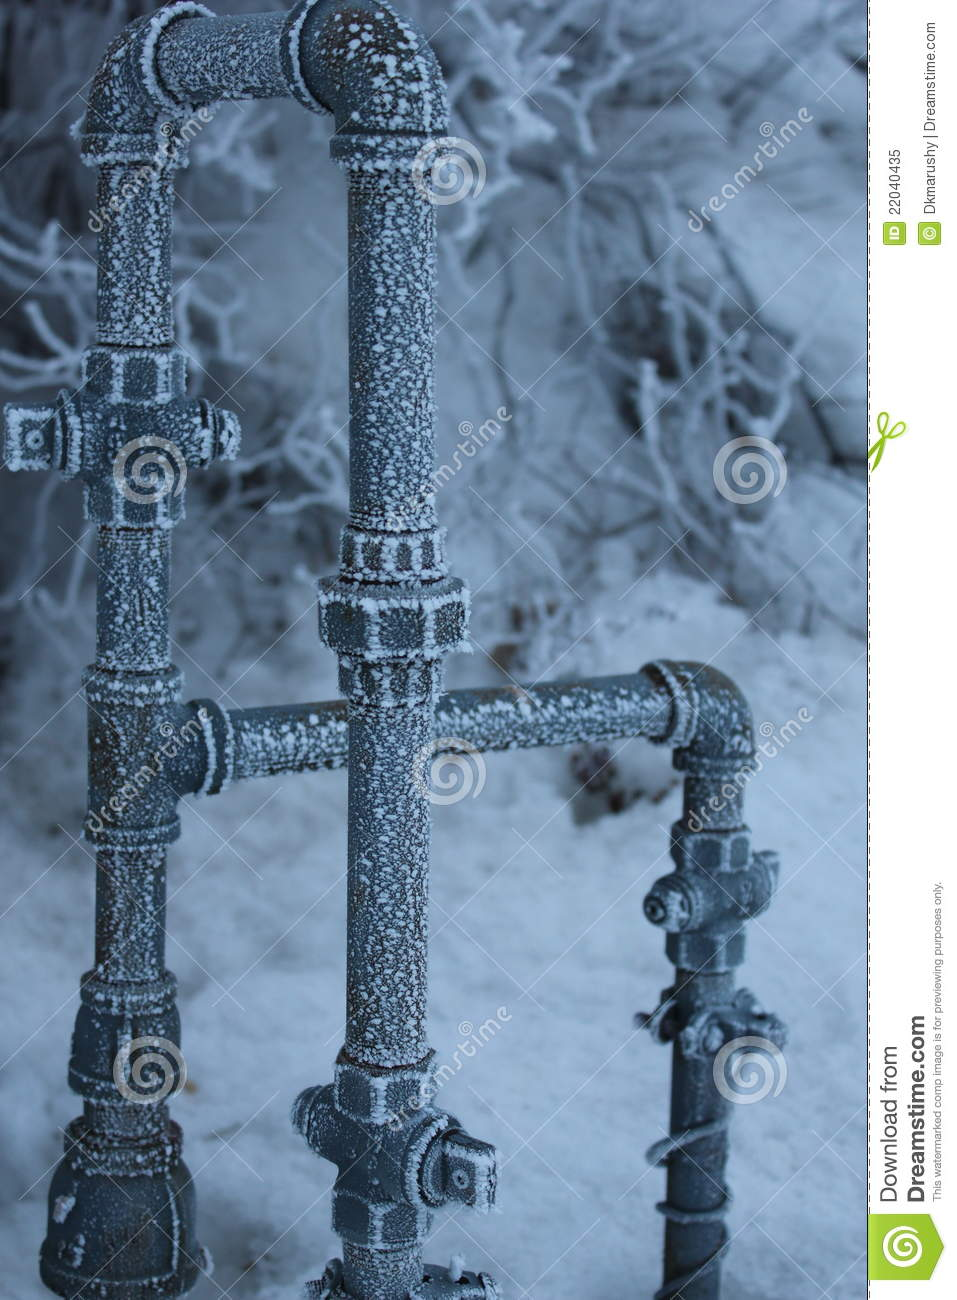 Frozen Pipes 2